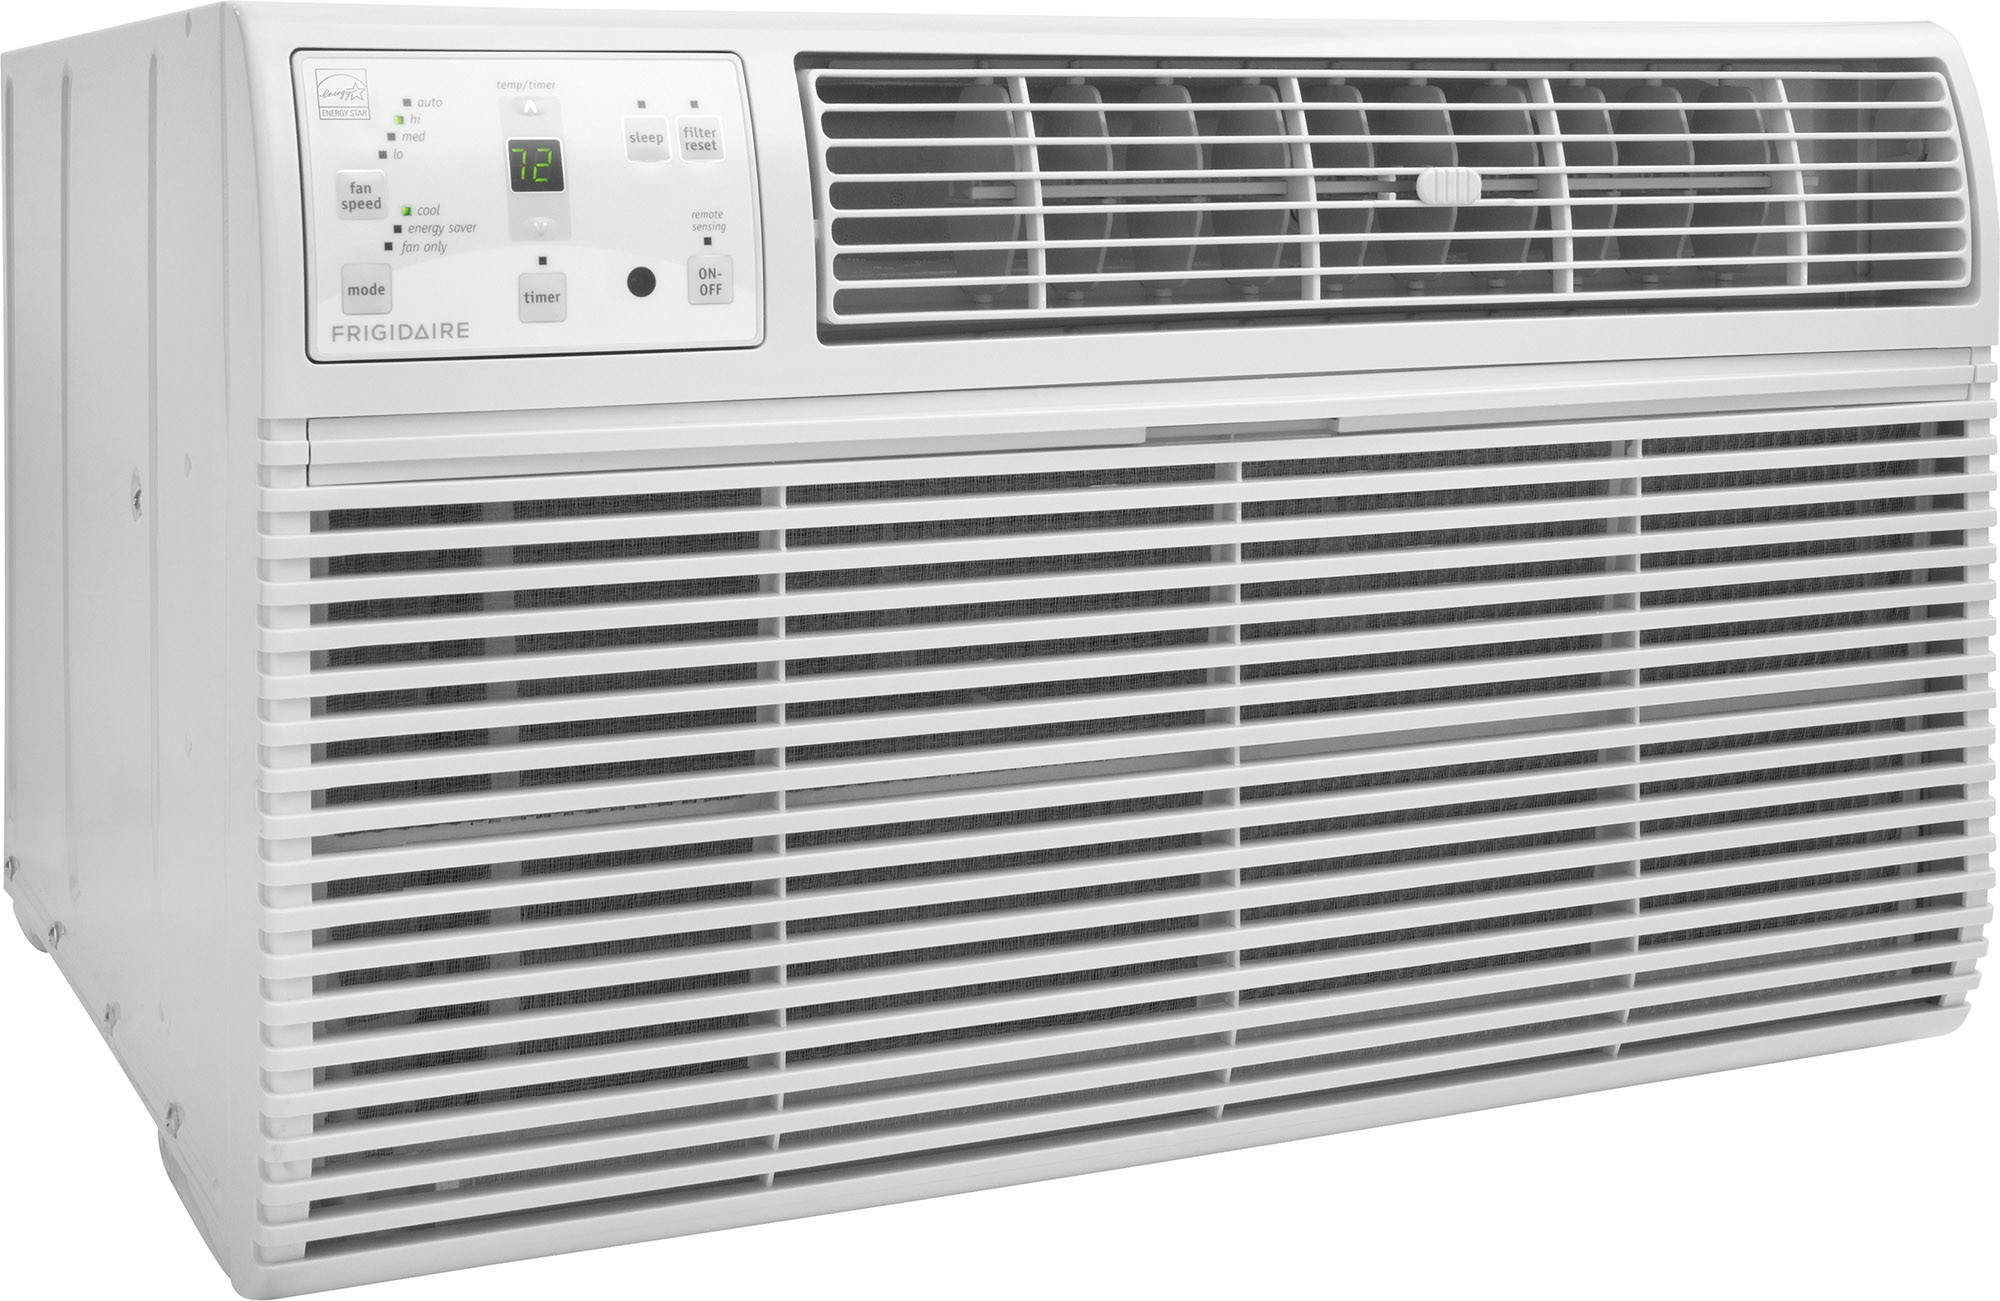 Frigidaire AC Window Wall Air Conditioners AJ Madison